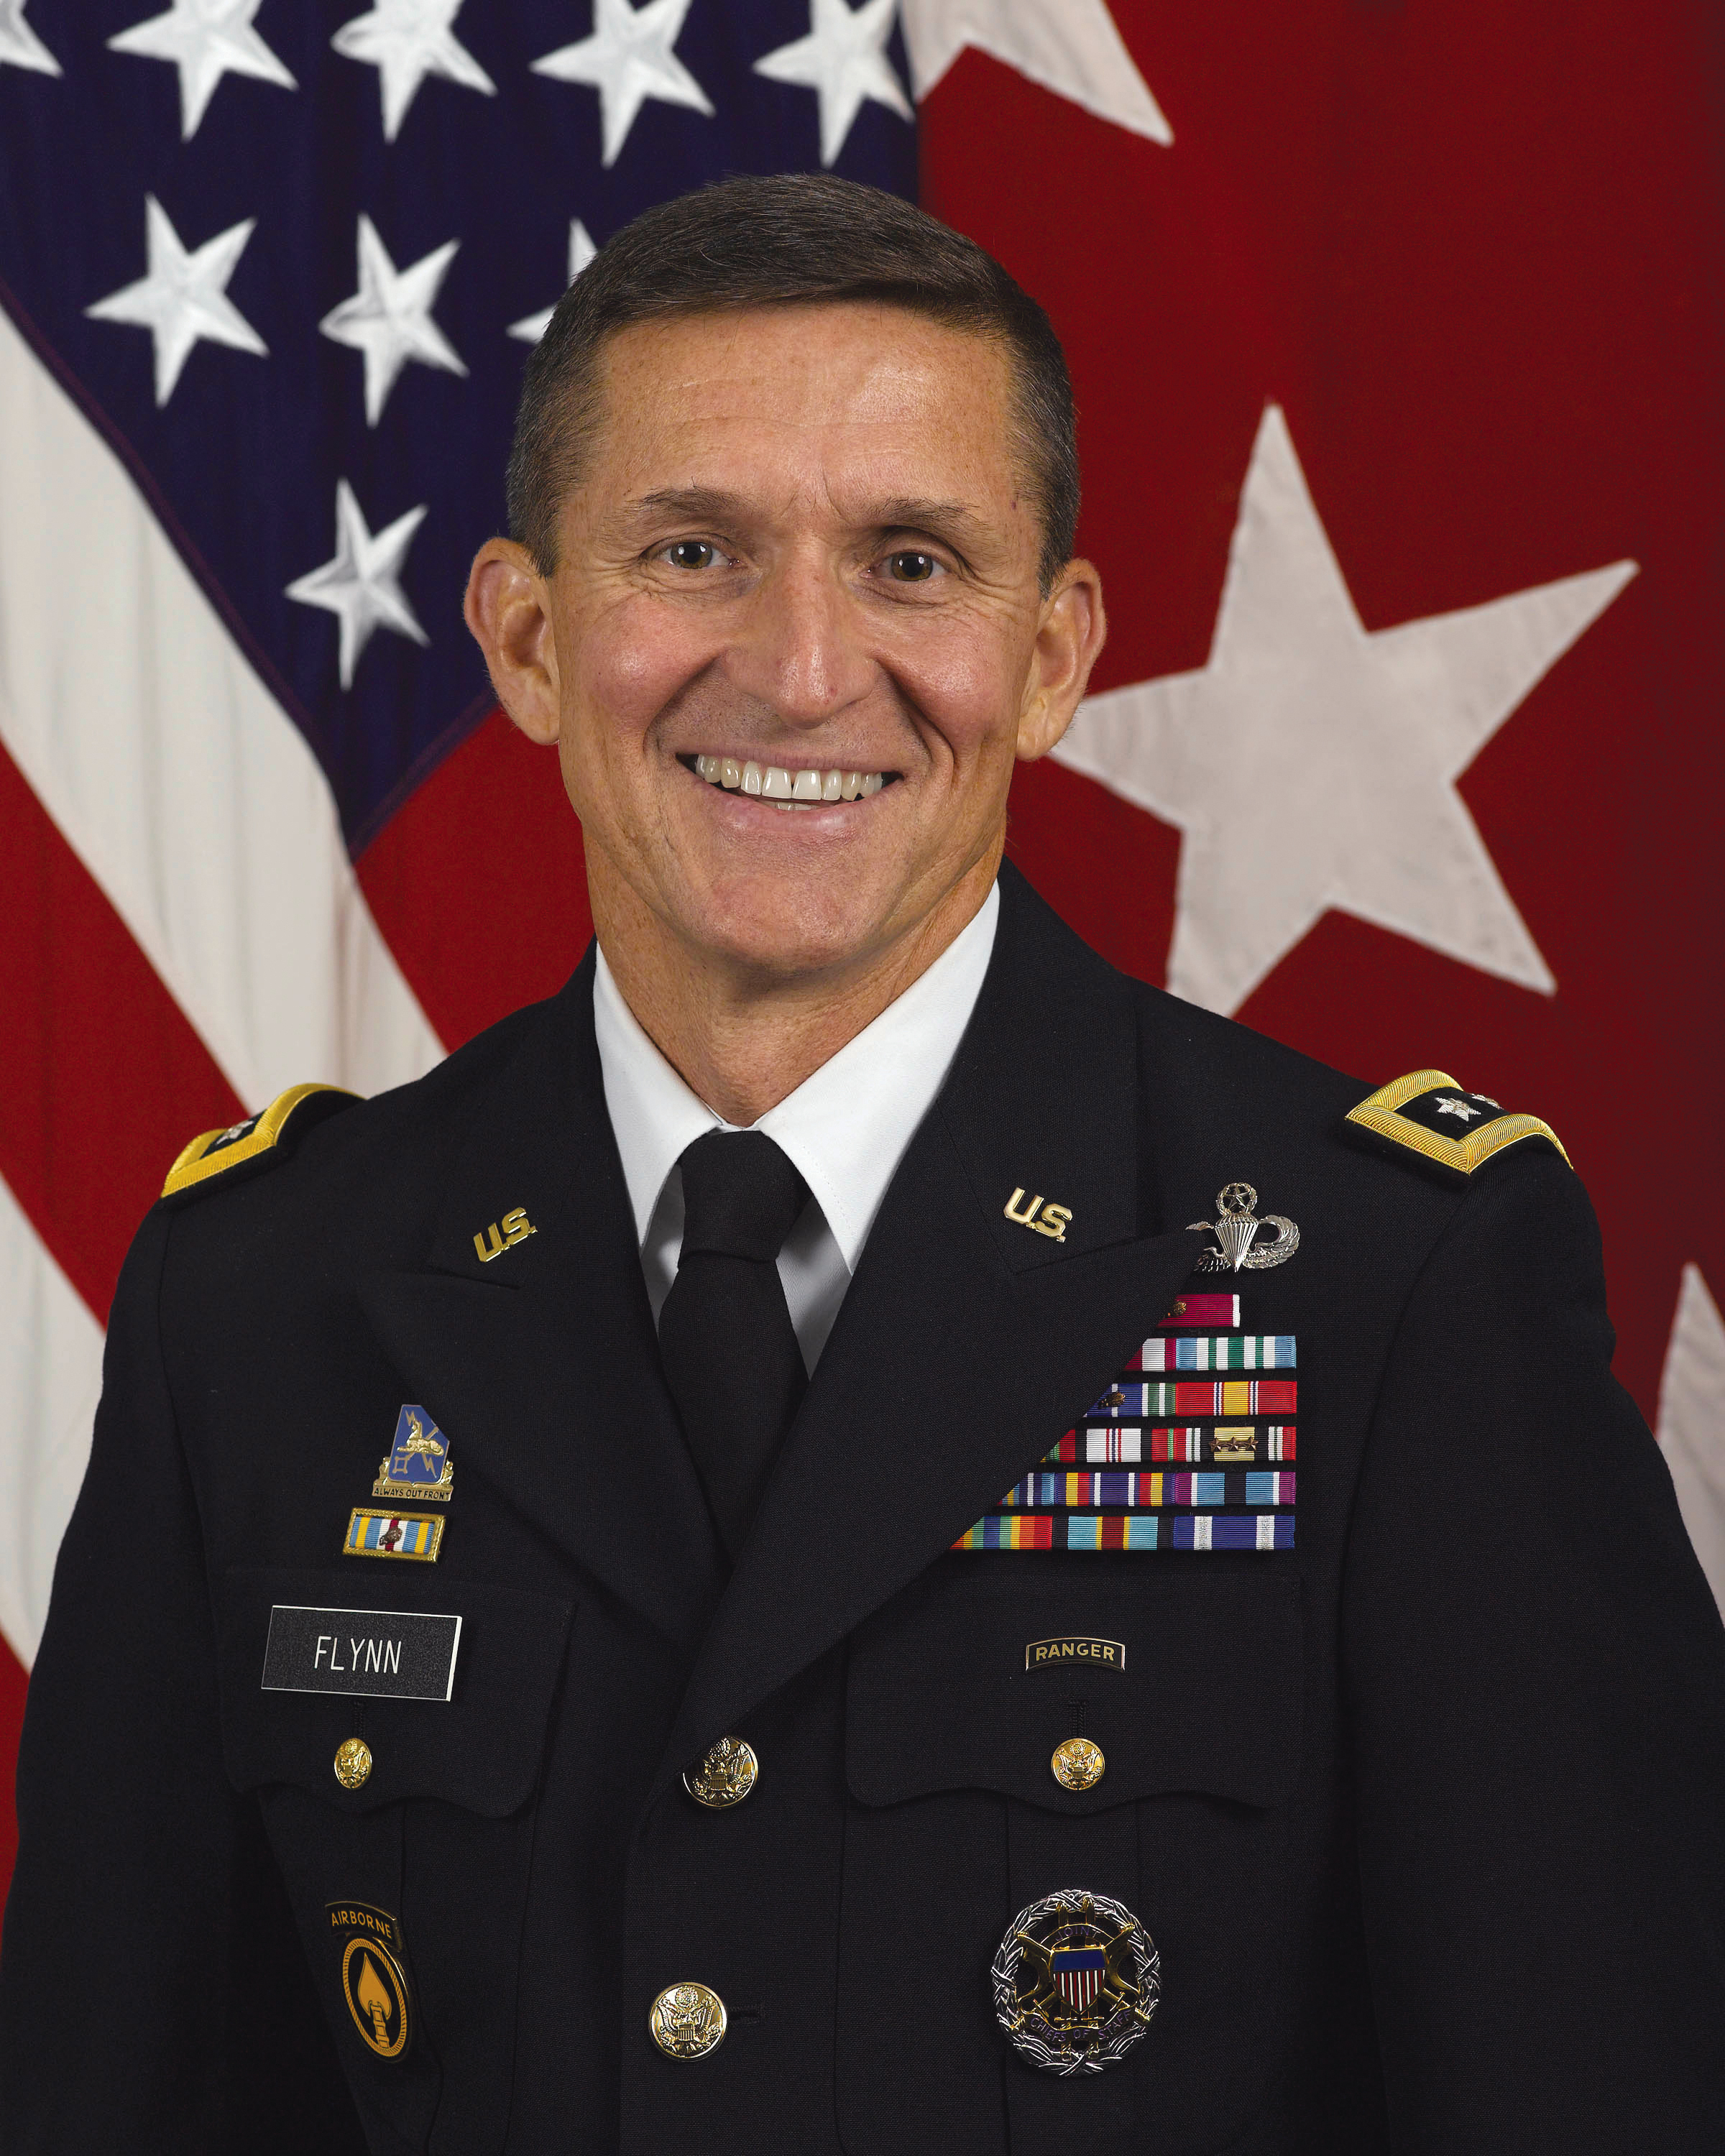 Michael Flynn - Wikipedia